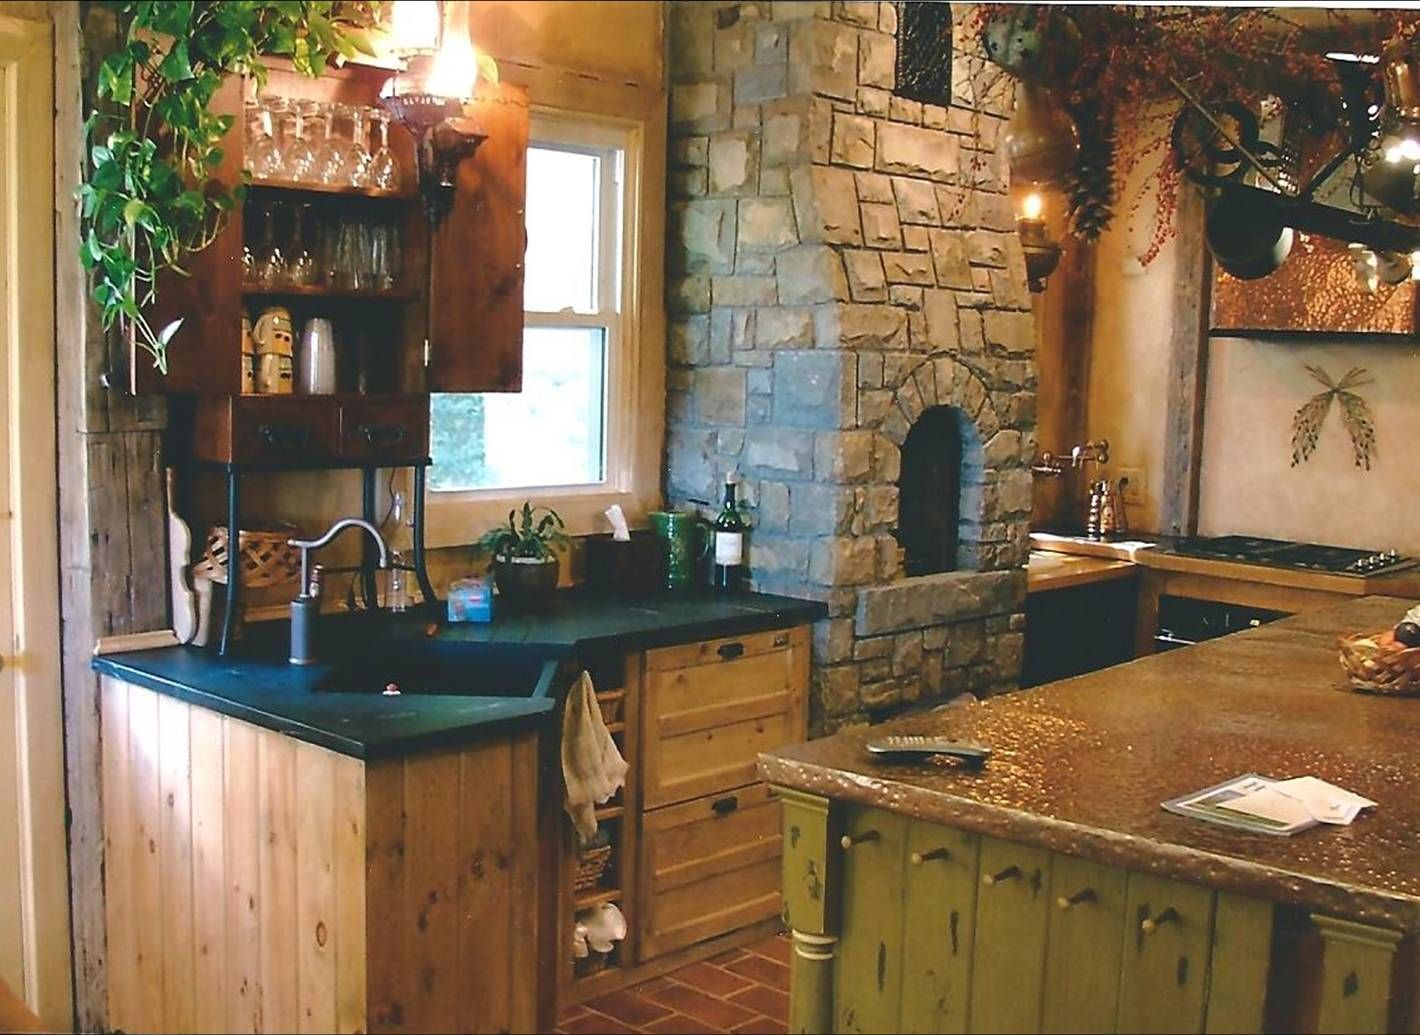 Elmira Ny Kitchen Project 2003 Notice Only 1 Upper Cabinet Which Is